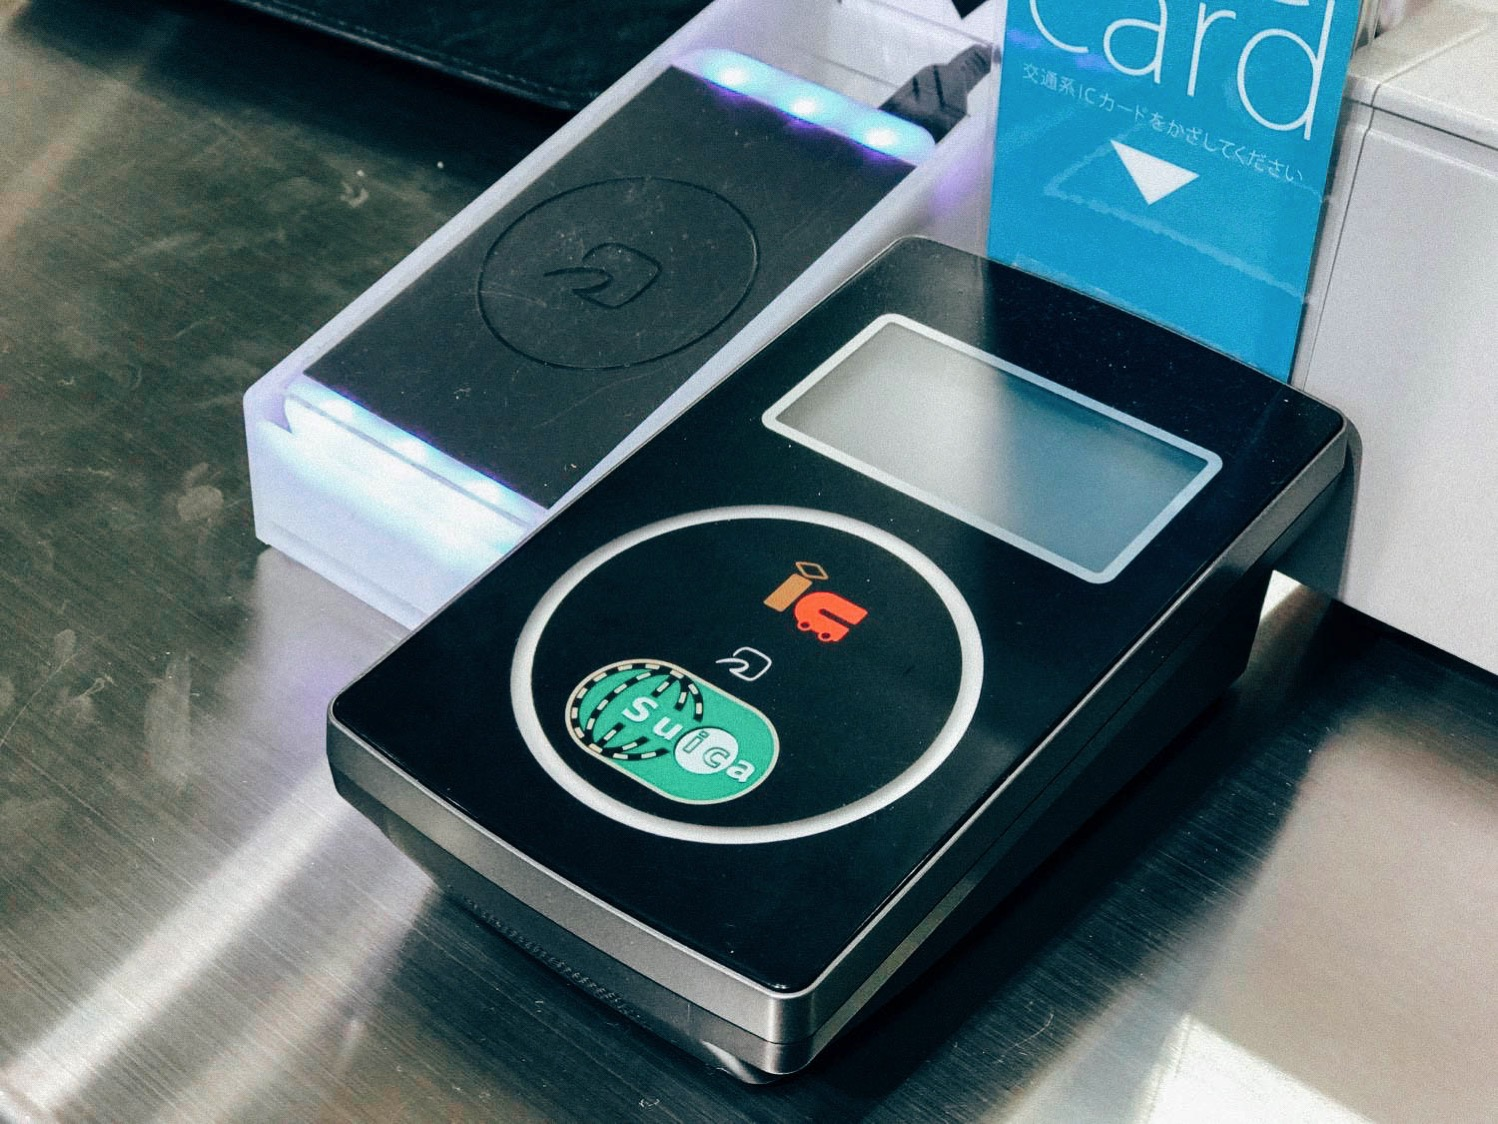 IPhone7 Suica Apple Pay 11 1